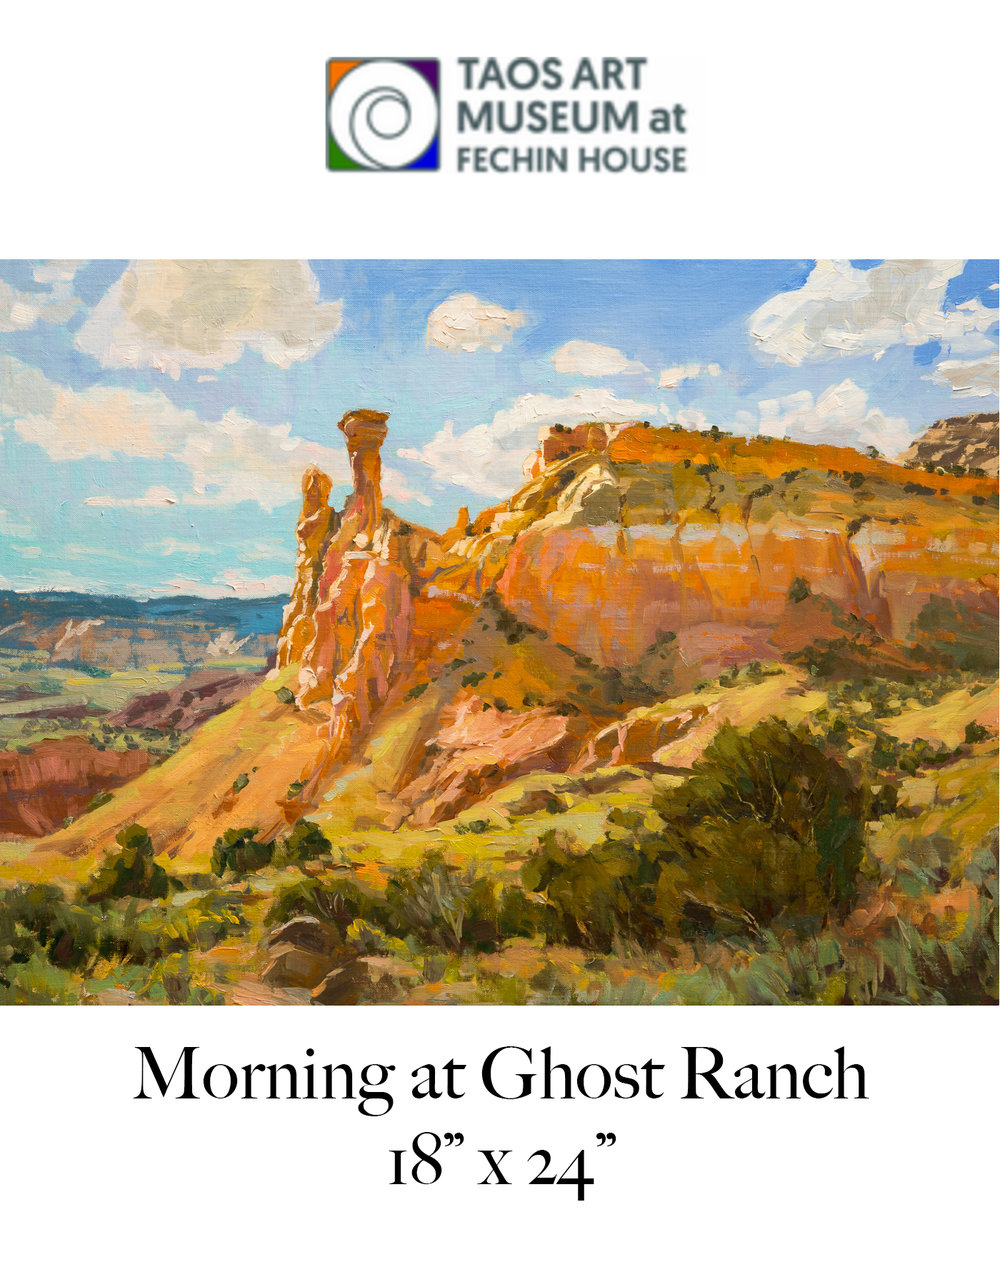 Plein Air Painters of New Mexico 2019 Signature Exhibition - Taos Art Museum at Fechin House, November 5, 2019 - March 31, 2019.Opening reception Nov. 10th 3-5 pm at Fechin House in Taos.Stay tuned for more information nearer to the event date!https://www.taosartmuseum.org/upcoming-exhibitions.html